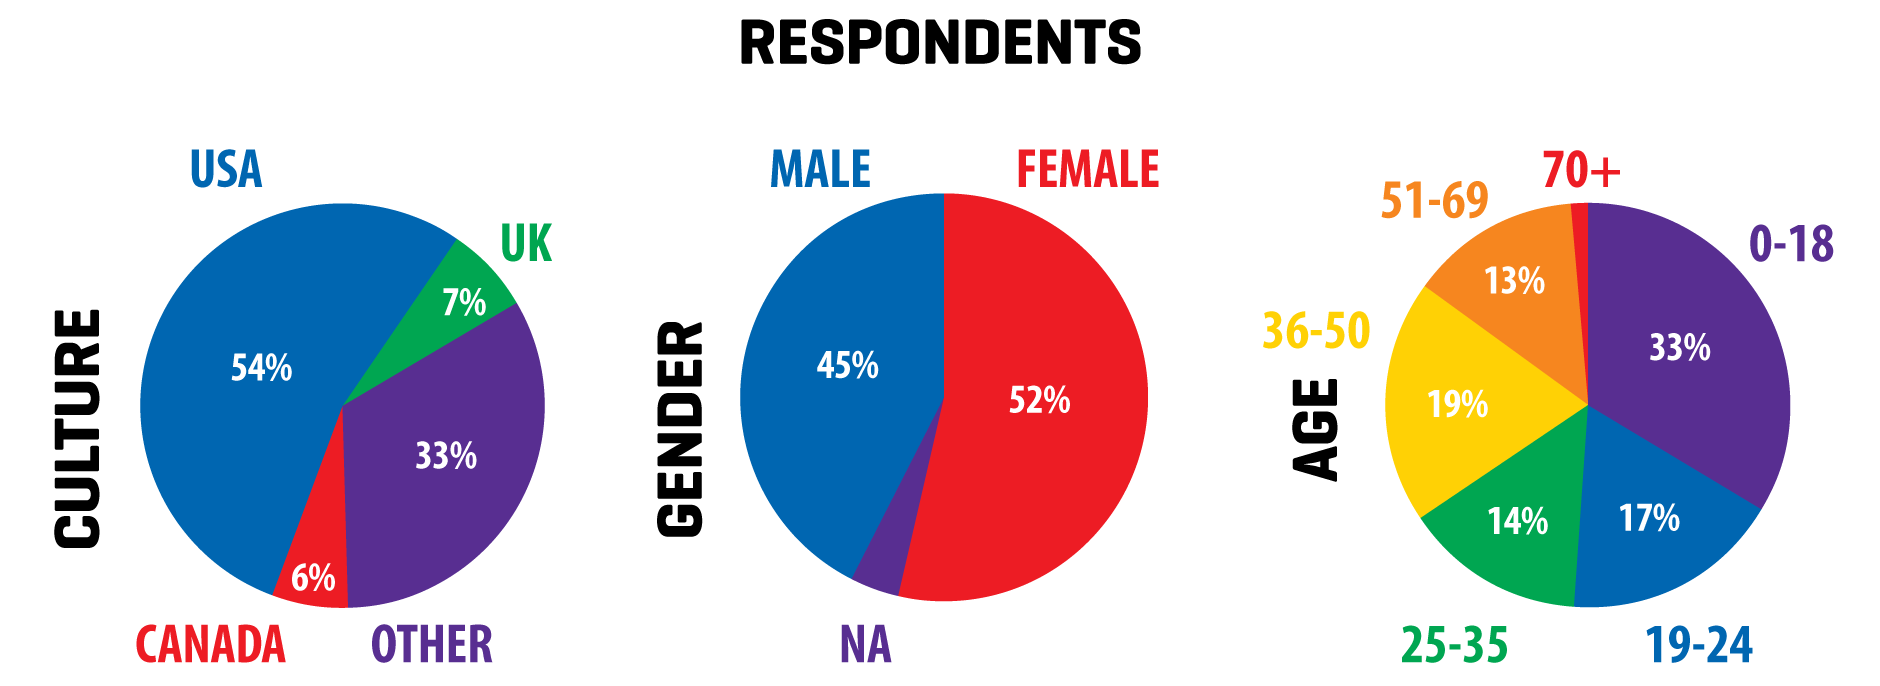 respondents to the color preferences survey by geography, age, and gender